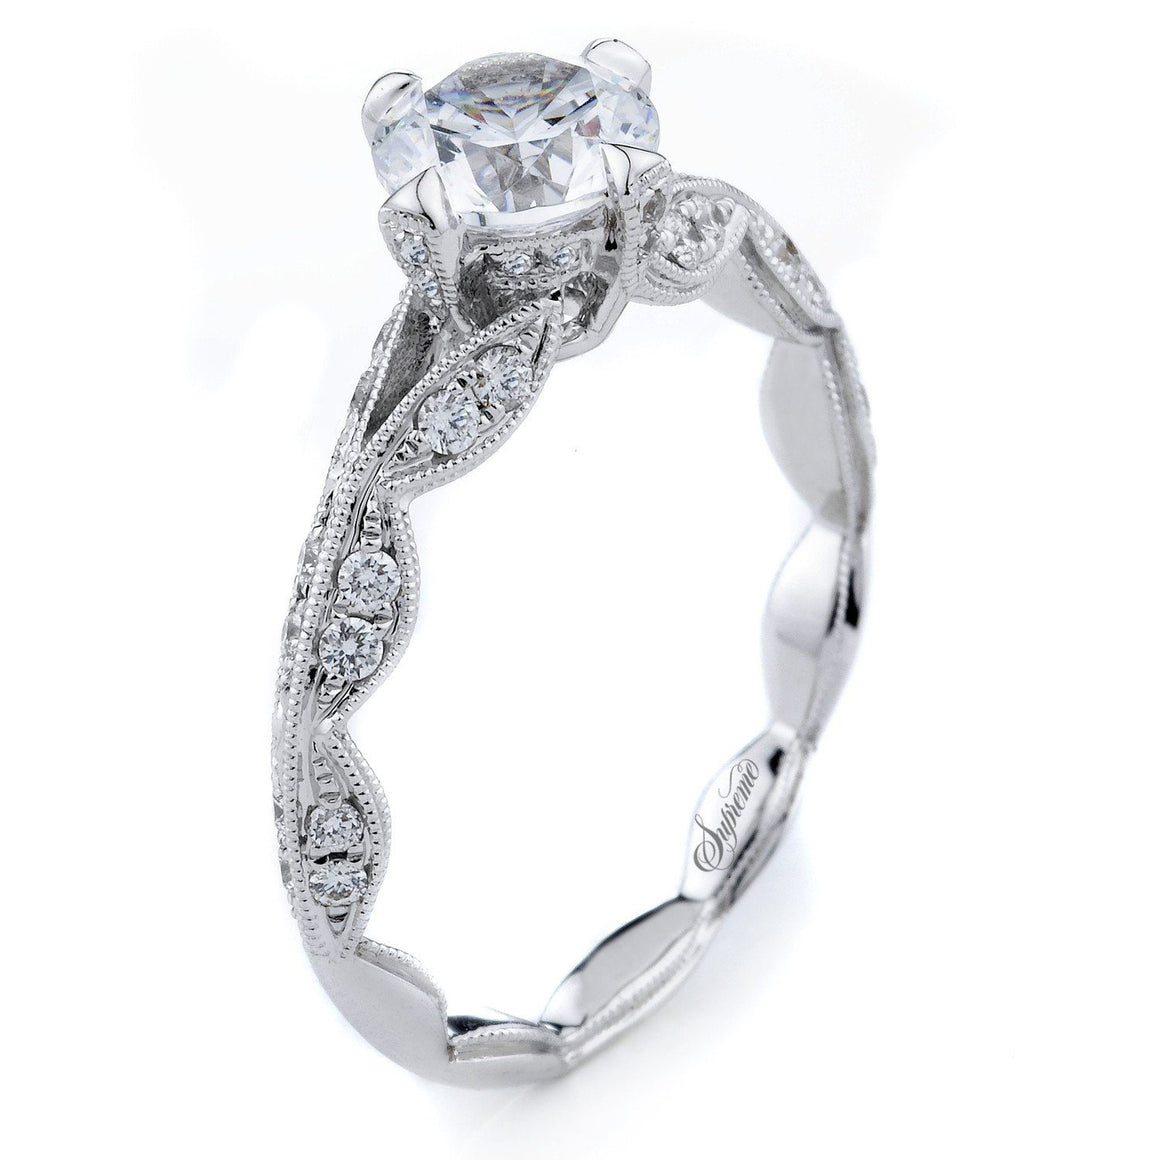 Supreme - SJU1505RS, Engagement Ring, Supreme Jewelry - Birmingham Jewelry